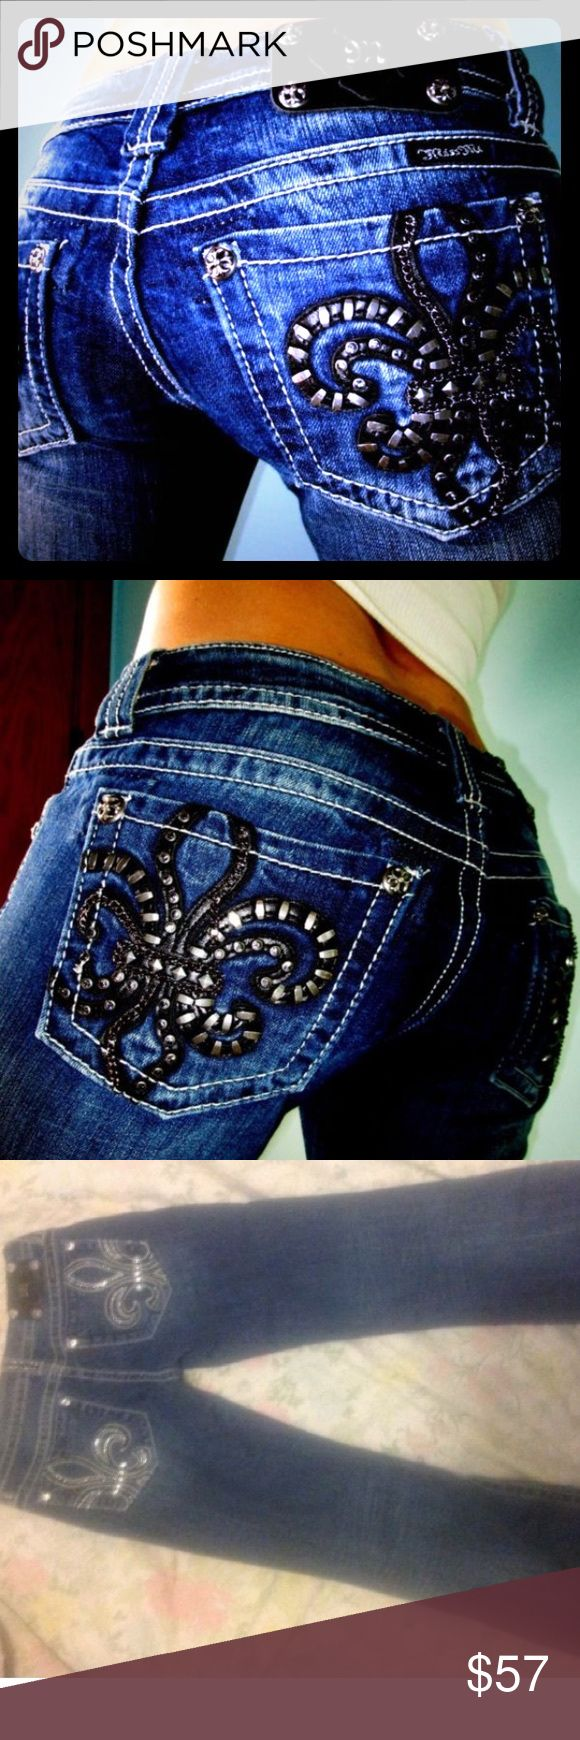 💋 NEW SUPER HOT MISS ME BLING BOOTY JEANS SIZE 28 💋 NEW SUPER HOT MISS ME BLING BOOTY JEANS SIZE 28. Makes the rear end look awesome! You will love them! NWOT Miss Me Jeans Boot Cut